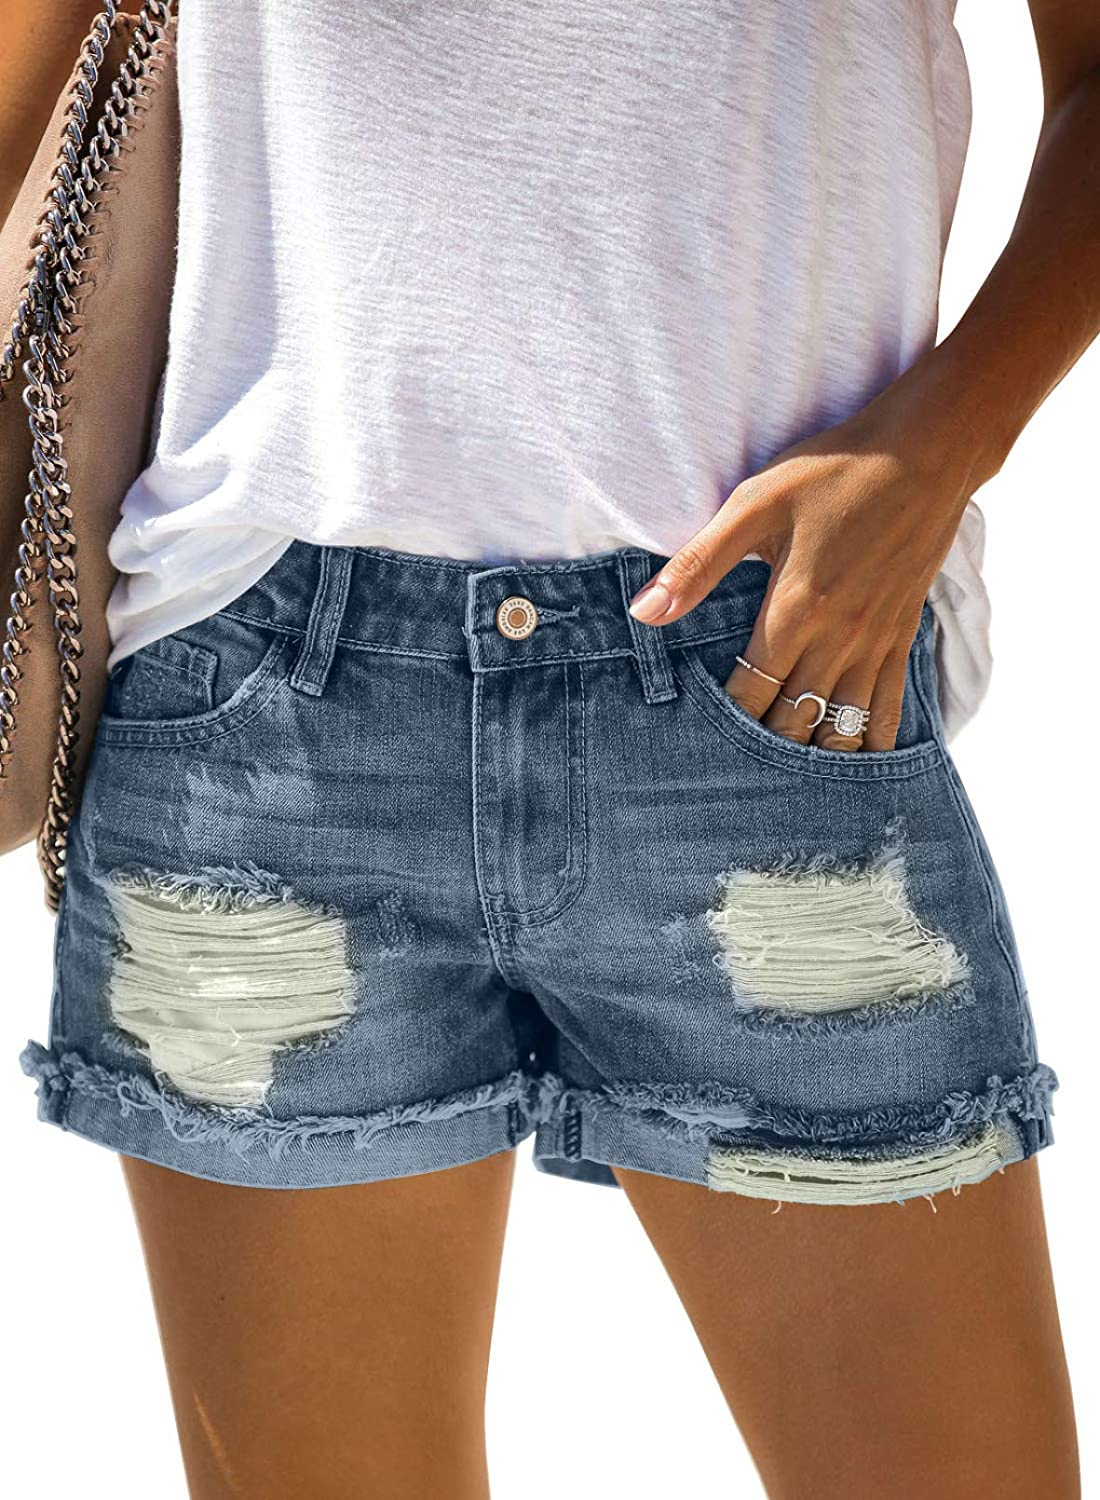 Paitluc Shorts for Women Jeans Distressed Summer Shorts with Pockets S-2XL